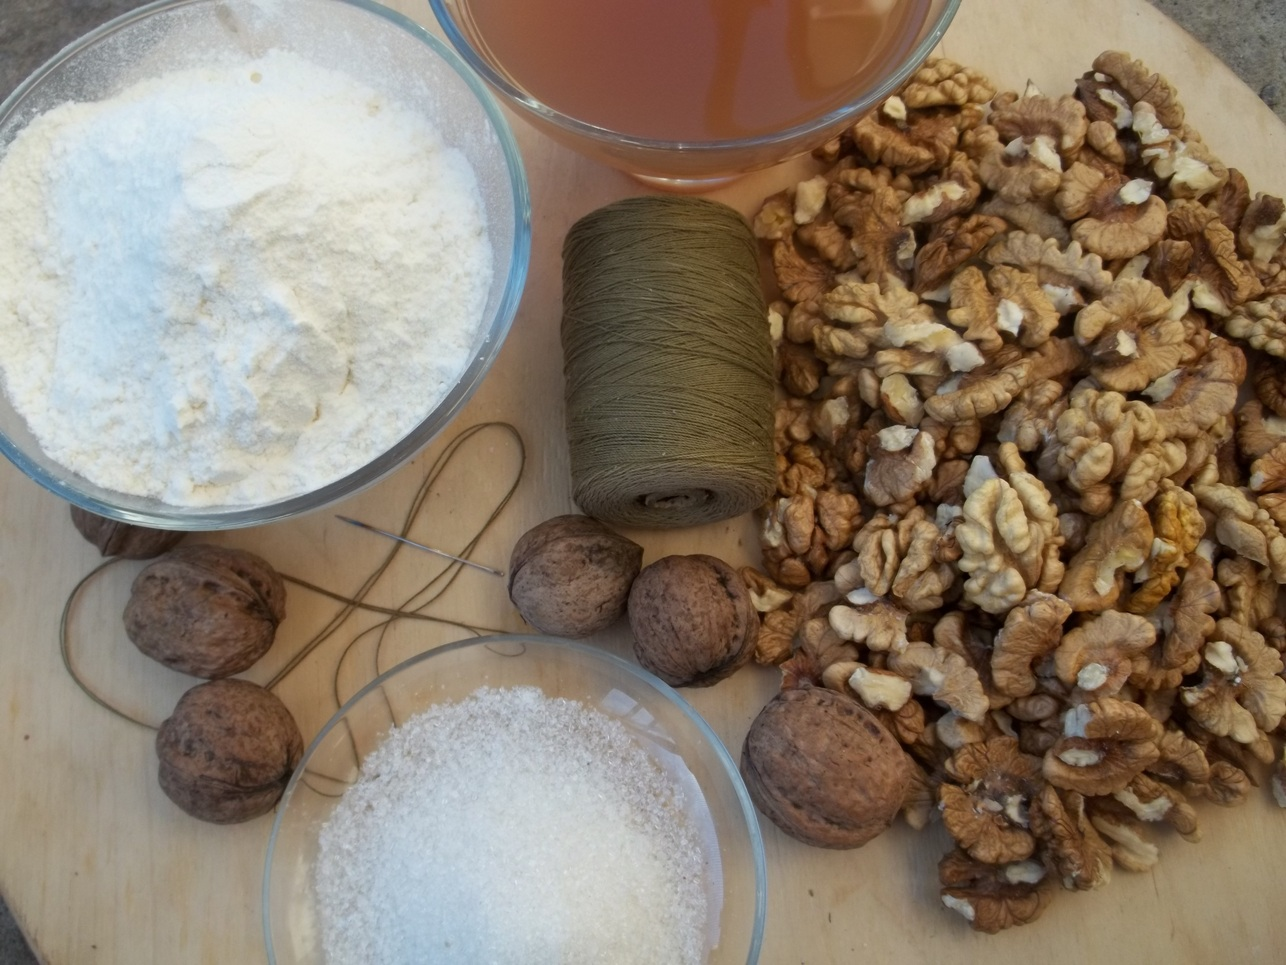 ... this recipe we show how to make churchkhela with walnuts and also